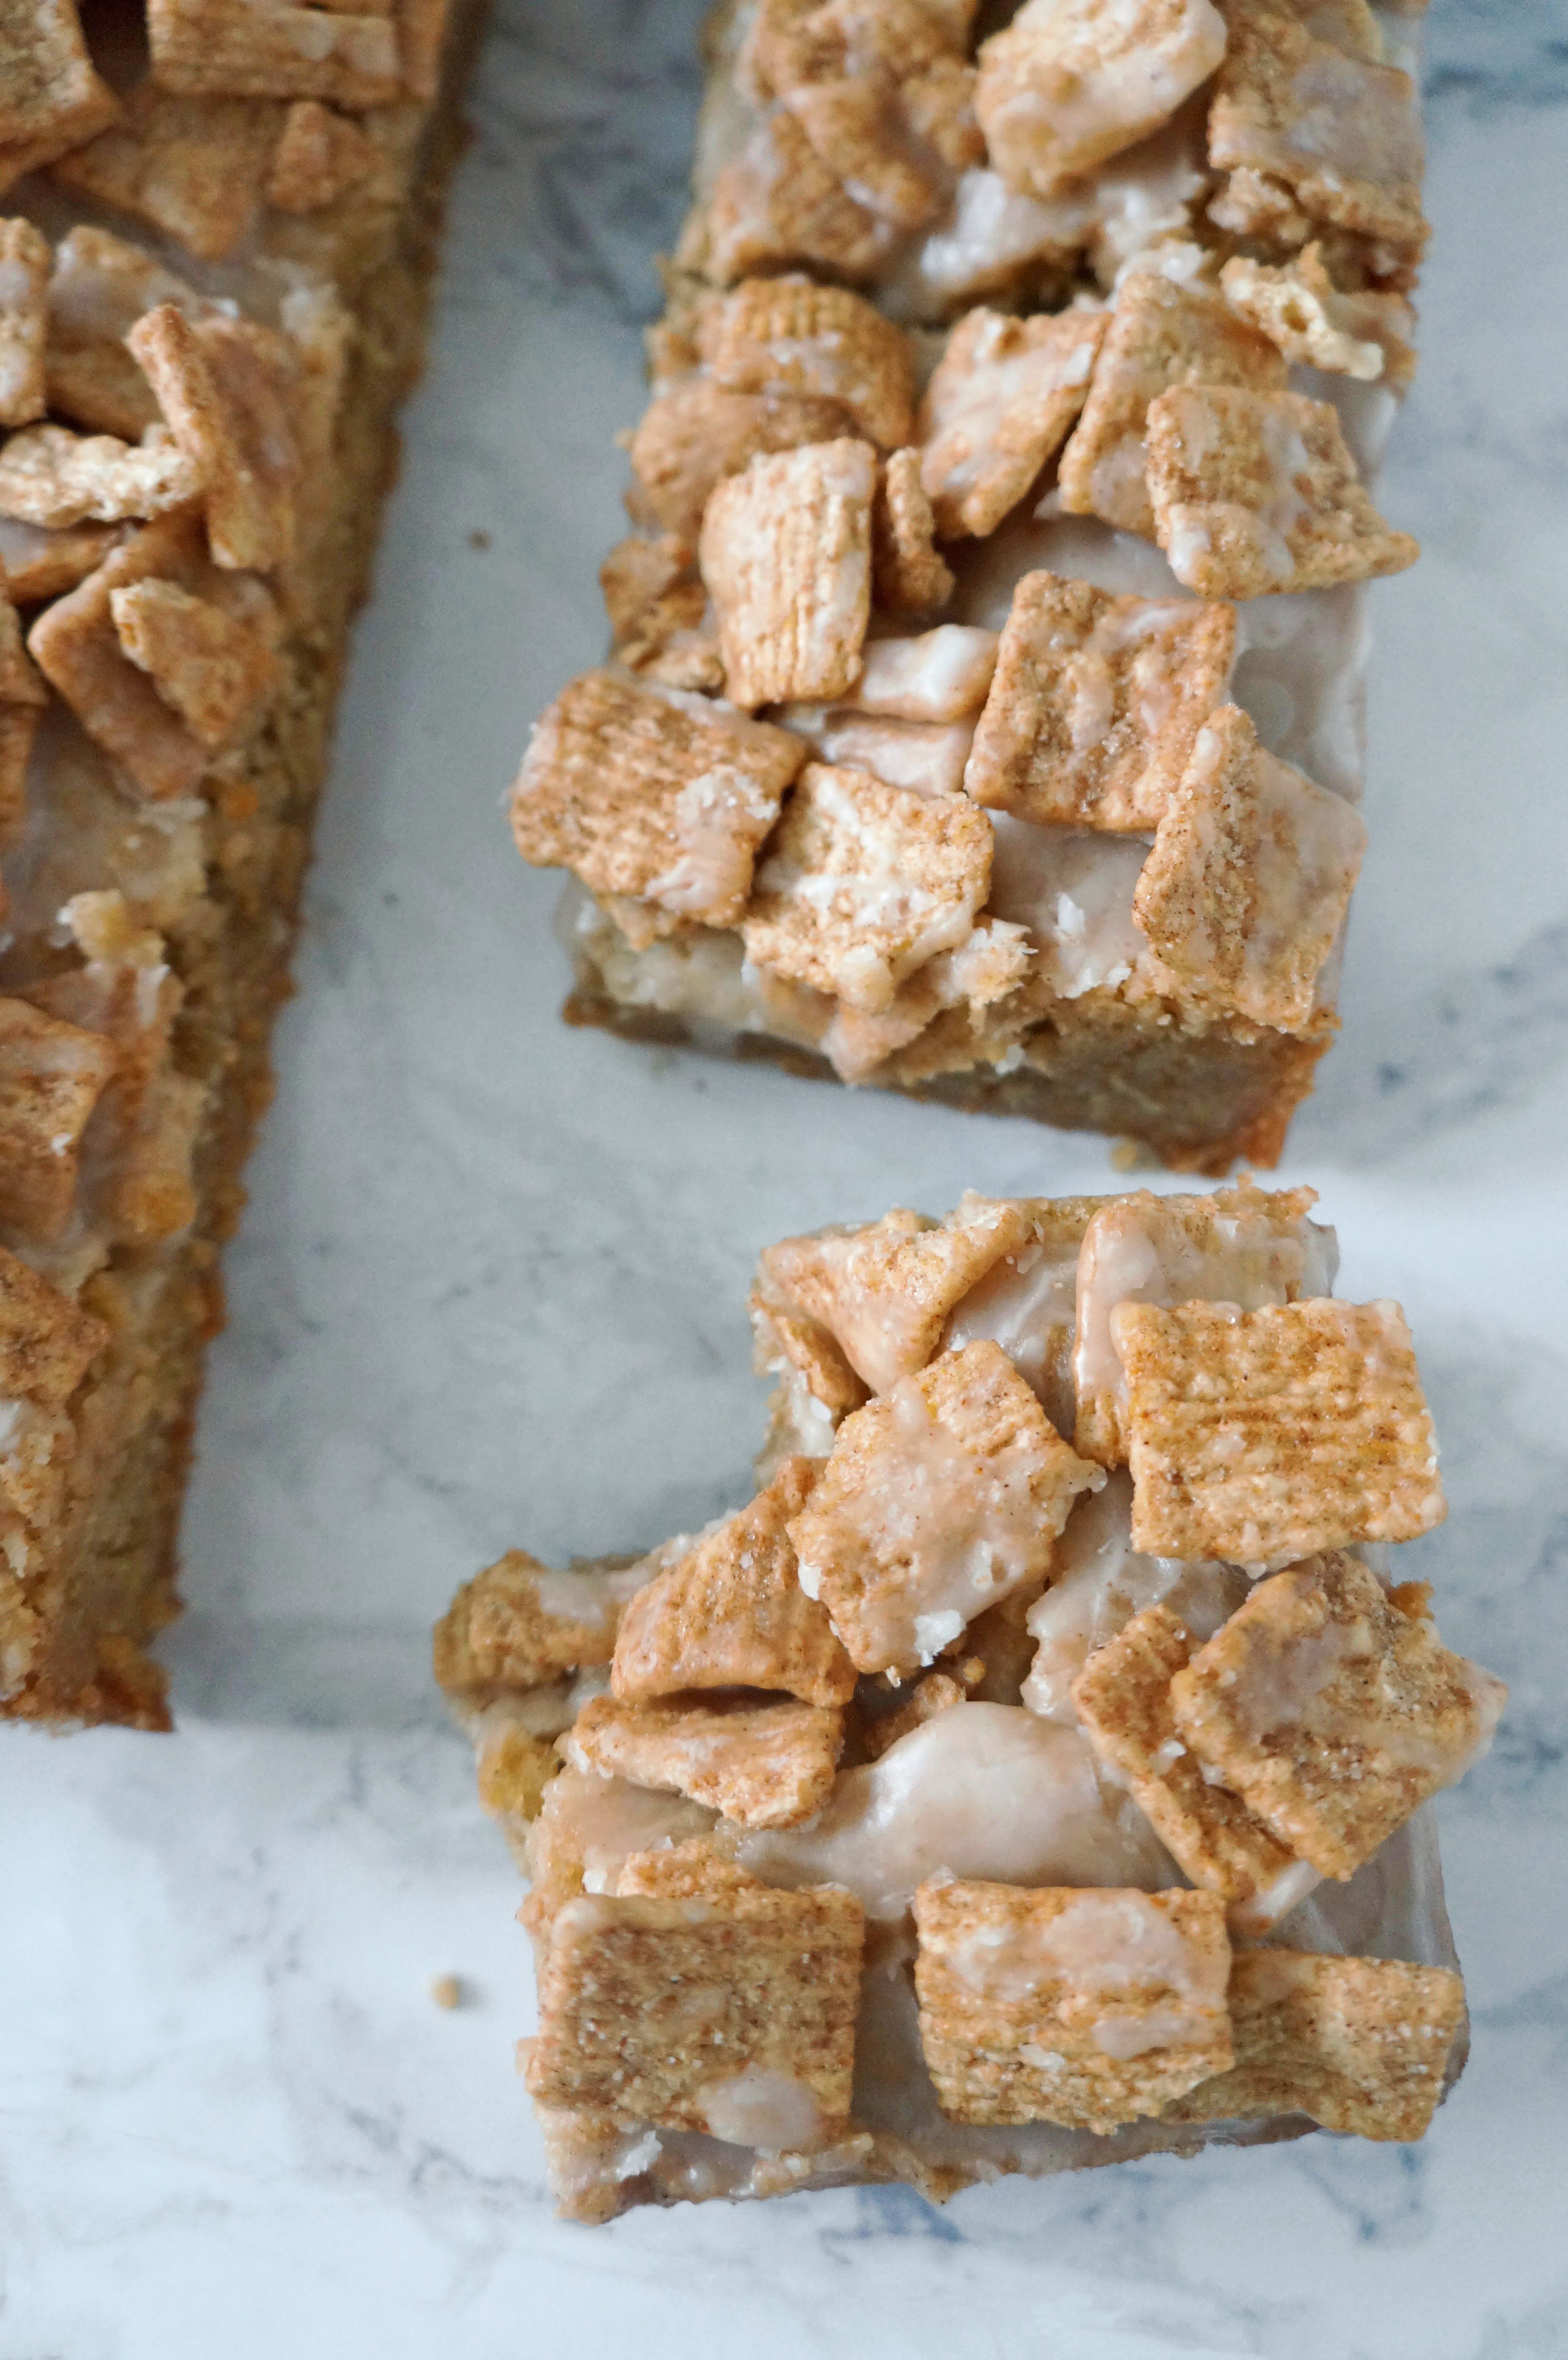 Cinnamon Toast Crunch Cereal Cookie Bars - One Broads Journey